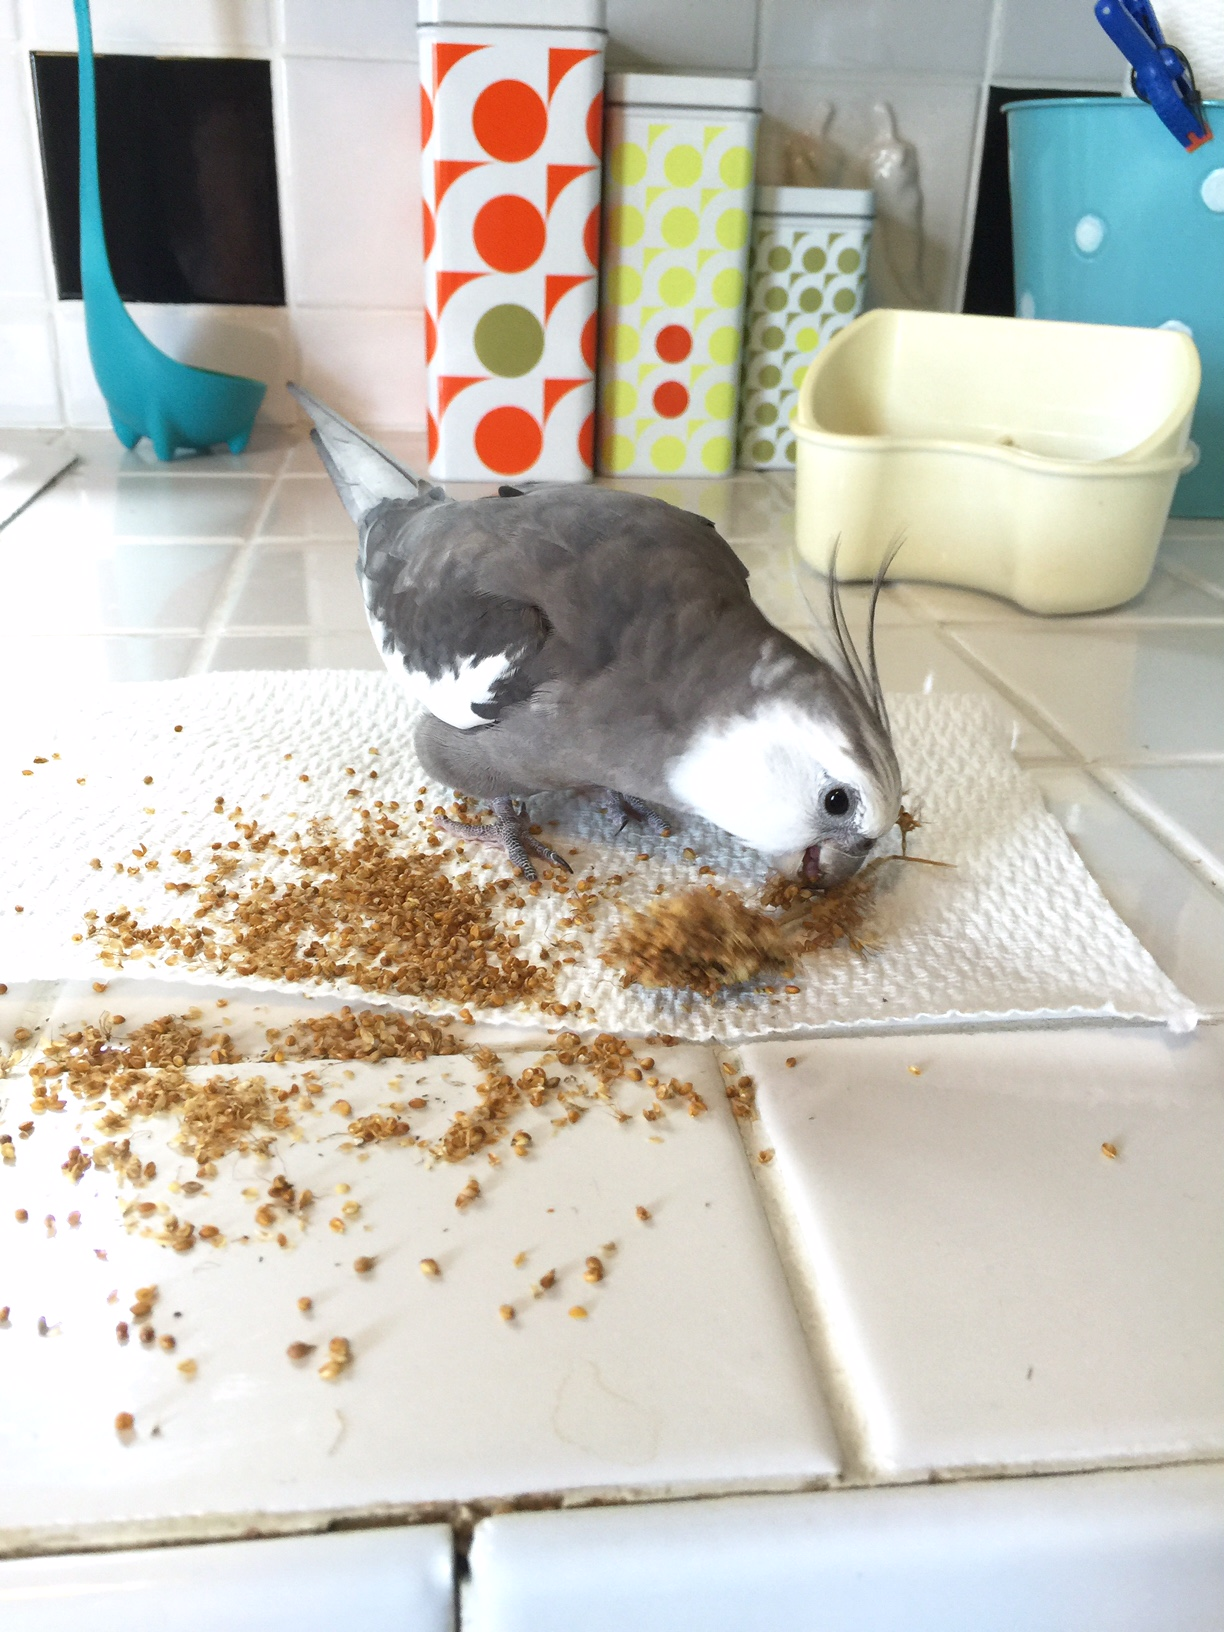 I can tell my mommy really loves me because she gives me millet and then encourages me to scatter it all across her clean counter!